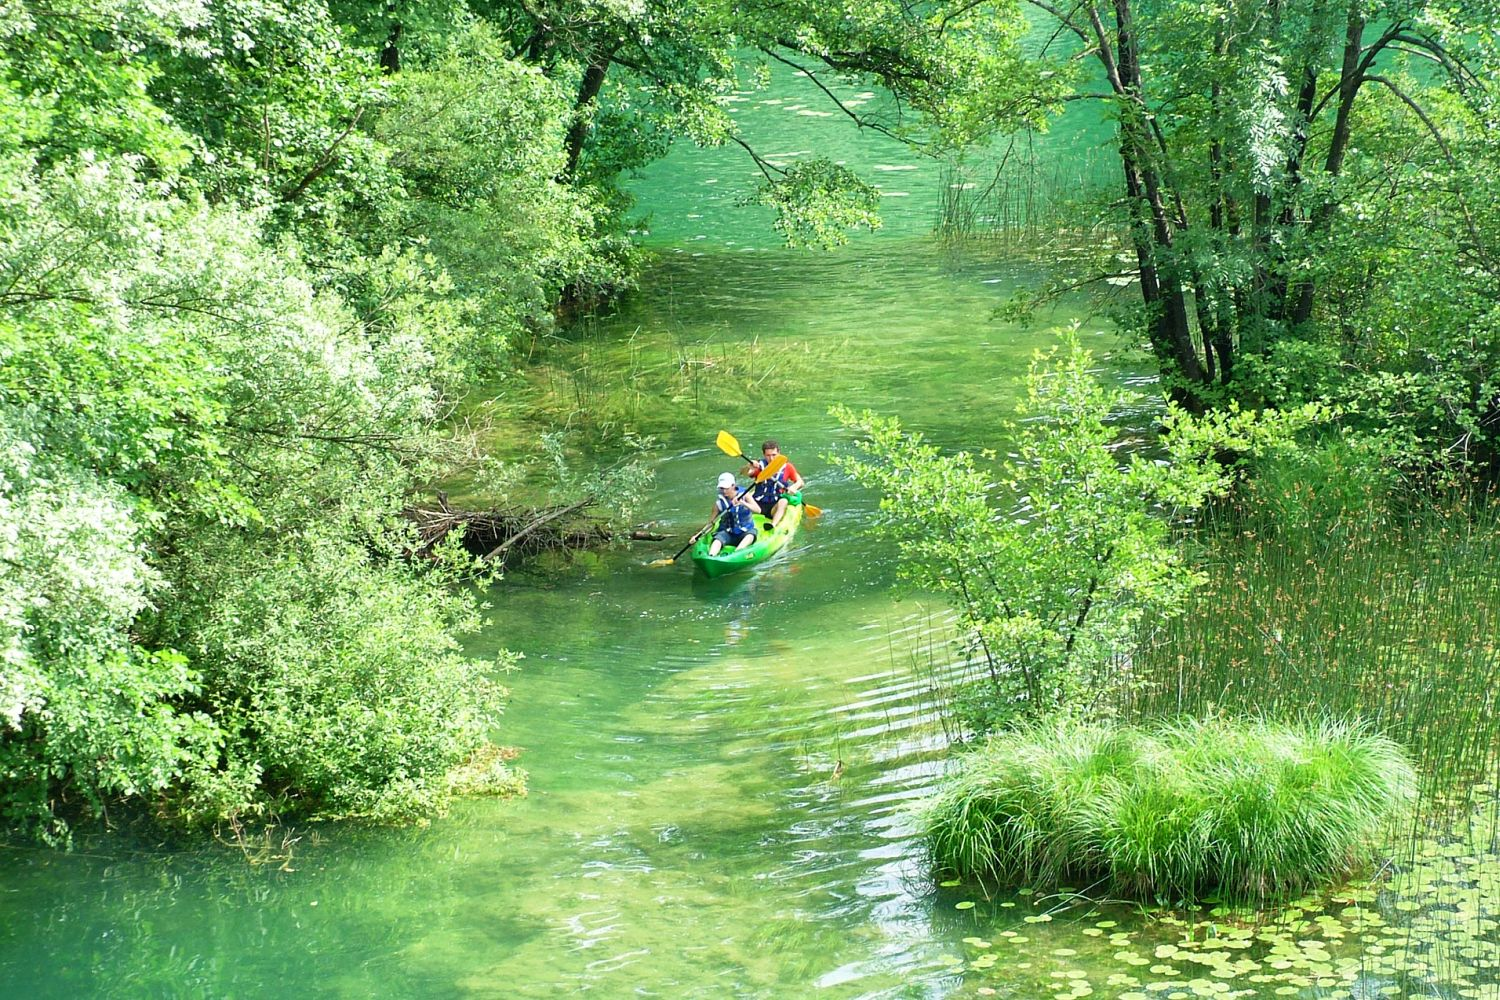 Mreznica River Kayaking Tour Croatia